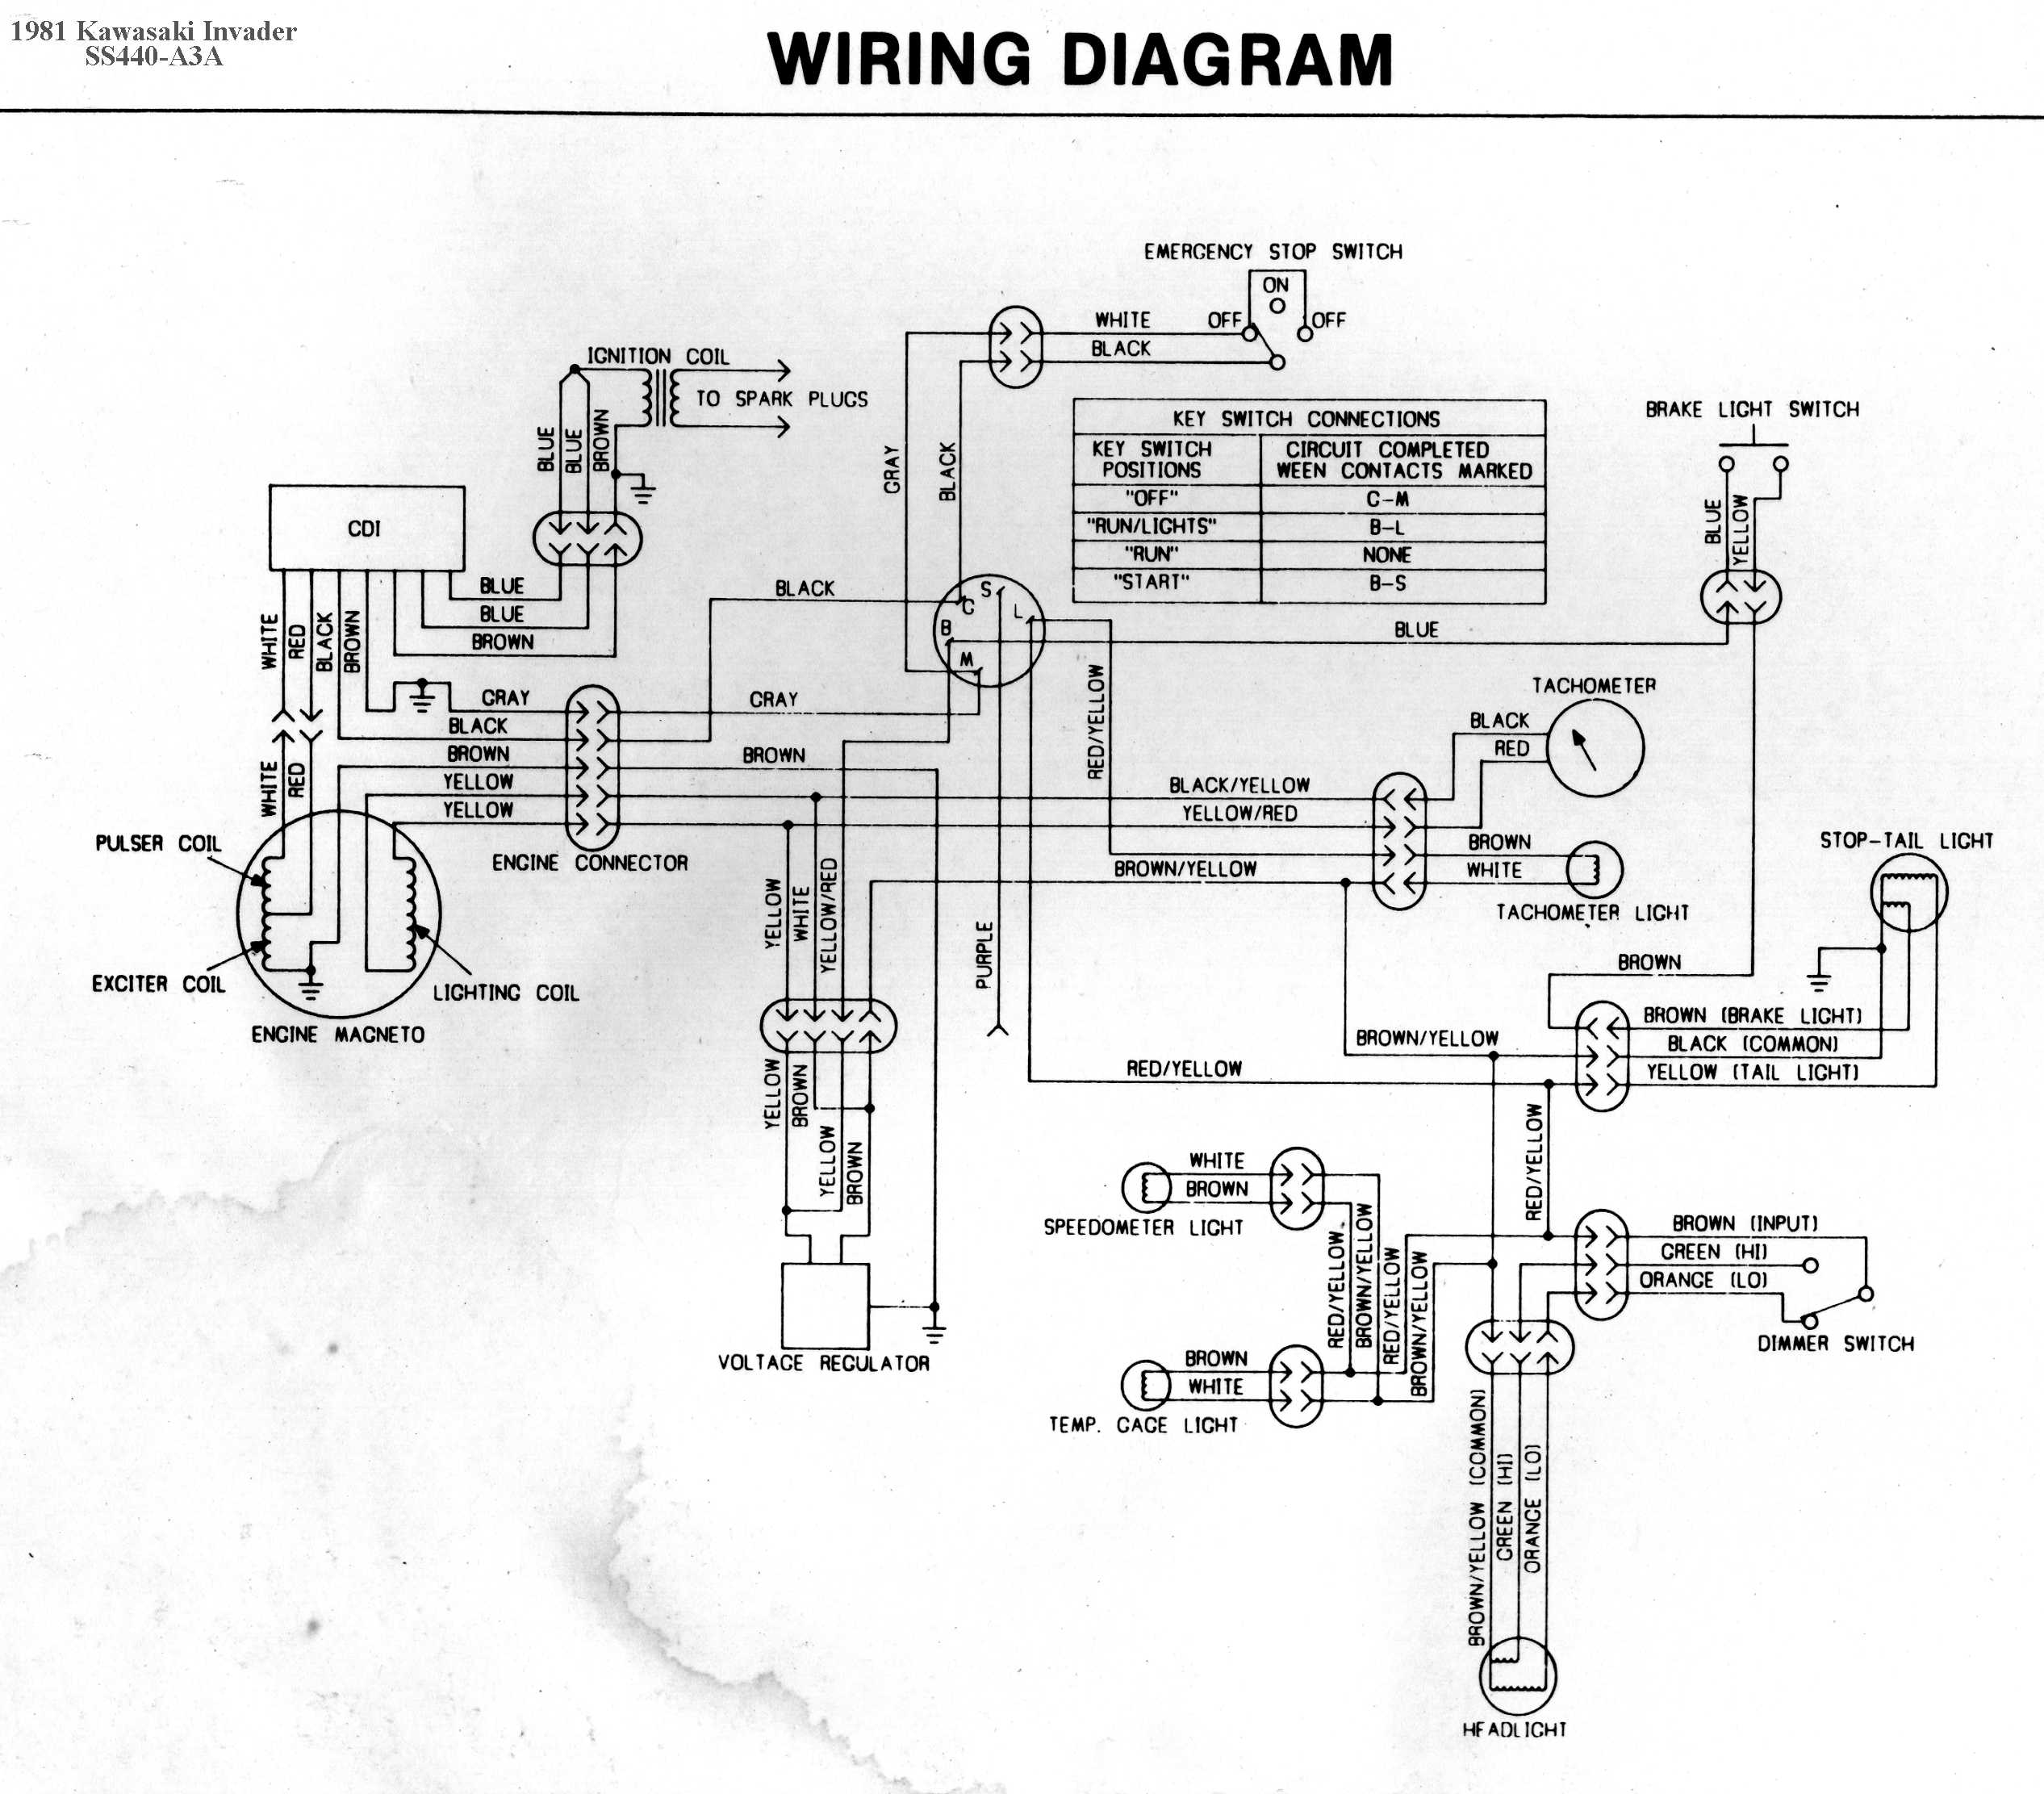 ss440a3a kawasaki invader snowmobile wiring diagrams  at eliteediting.co